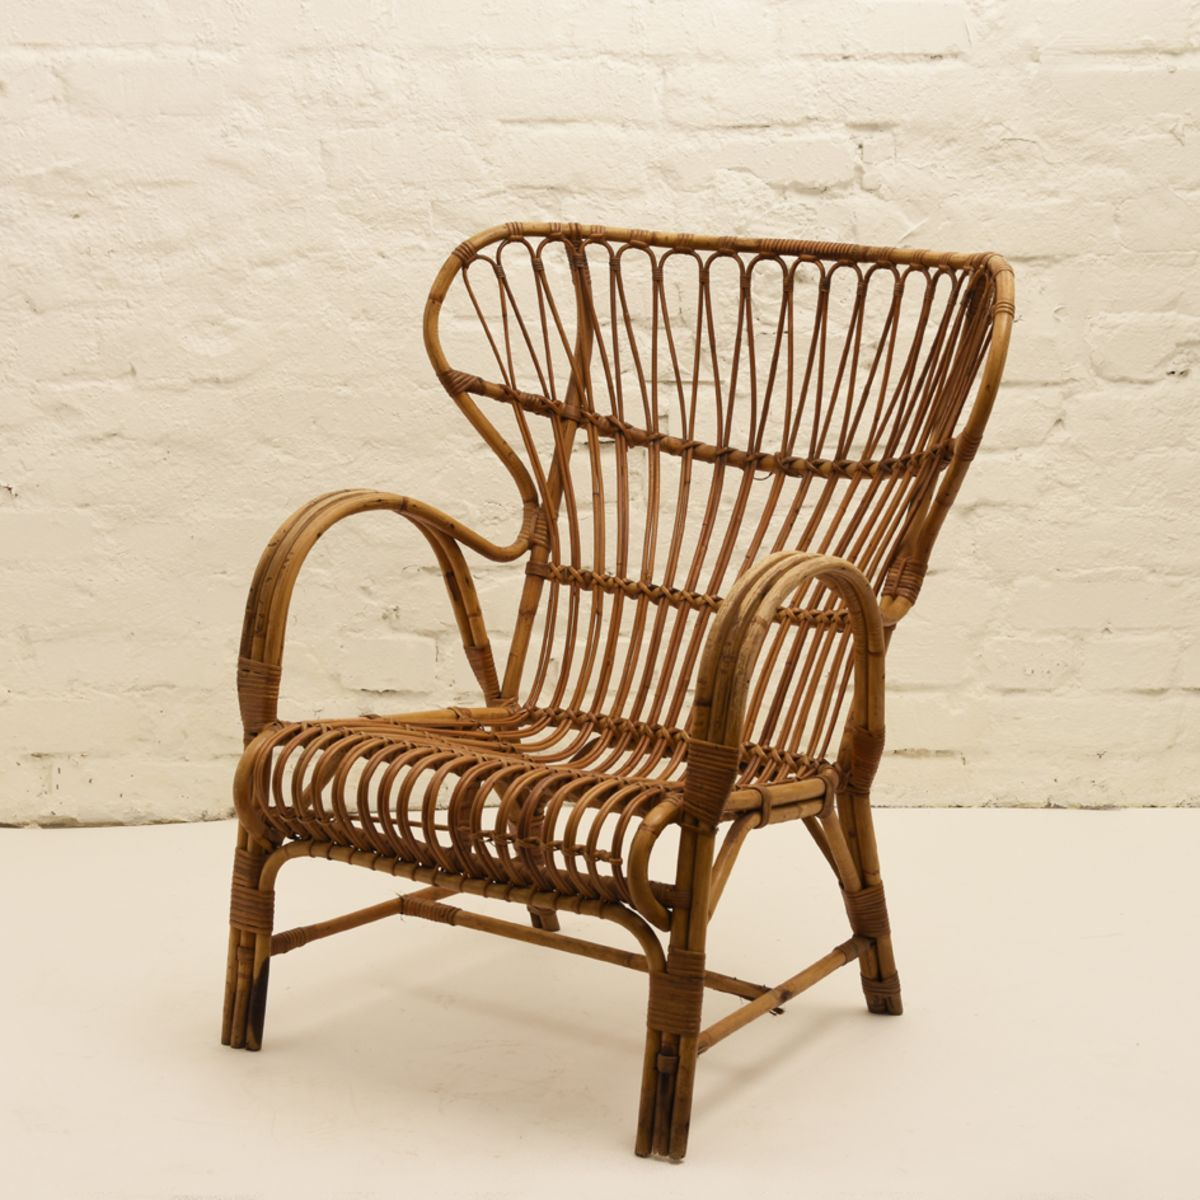 Finnish Rattan Chair